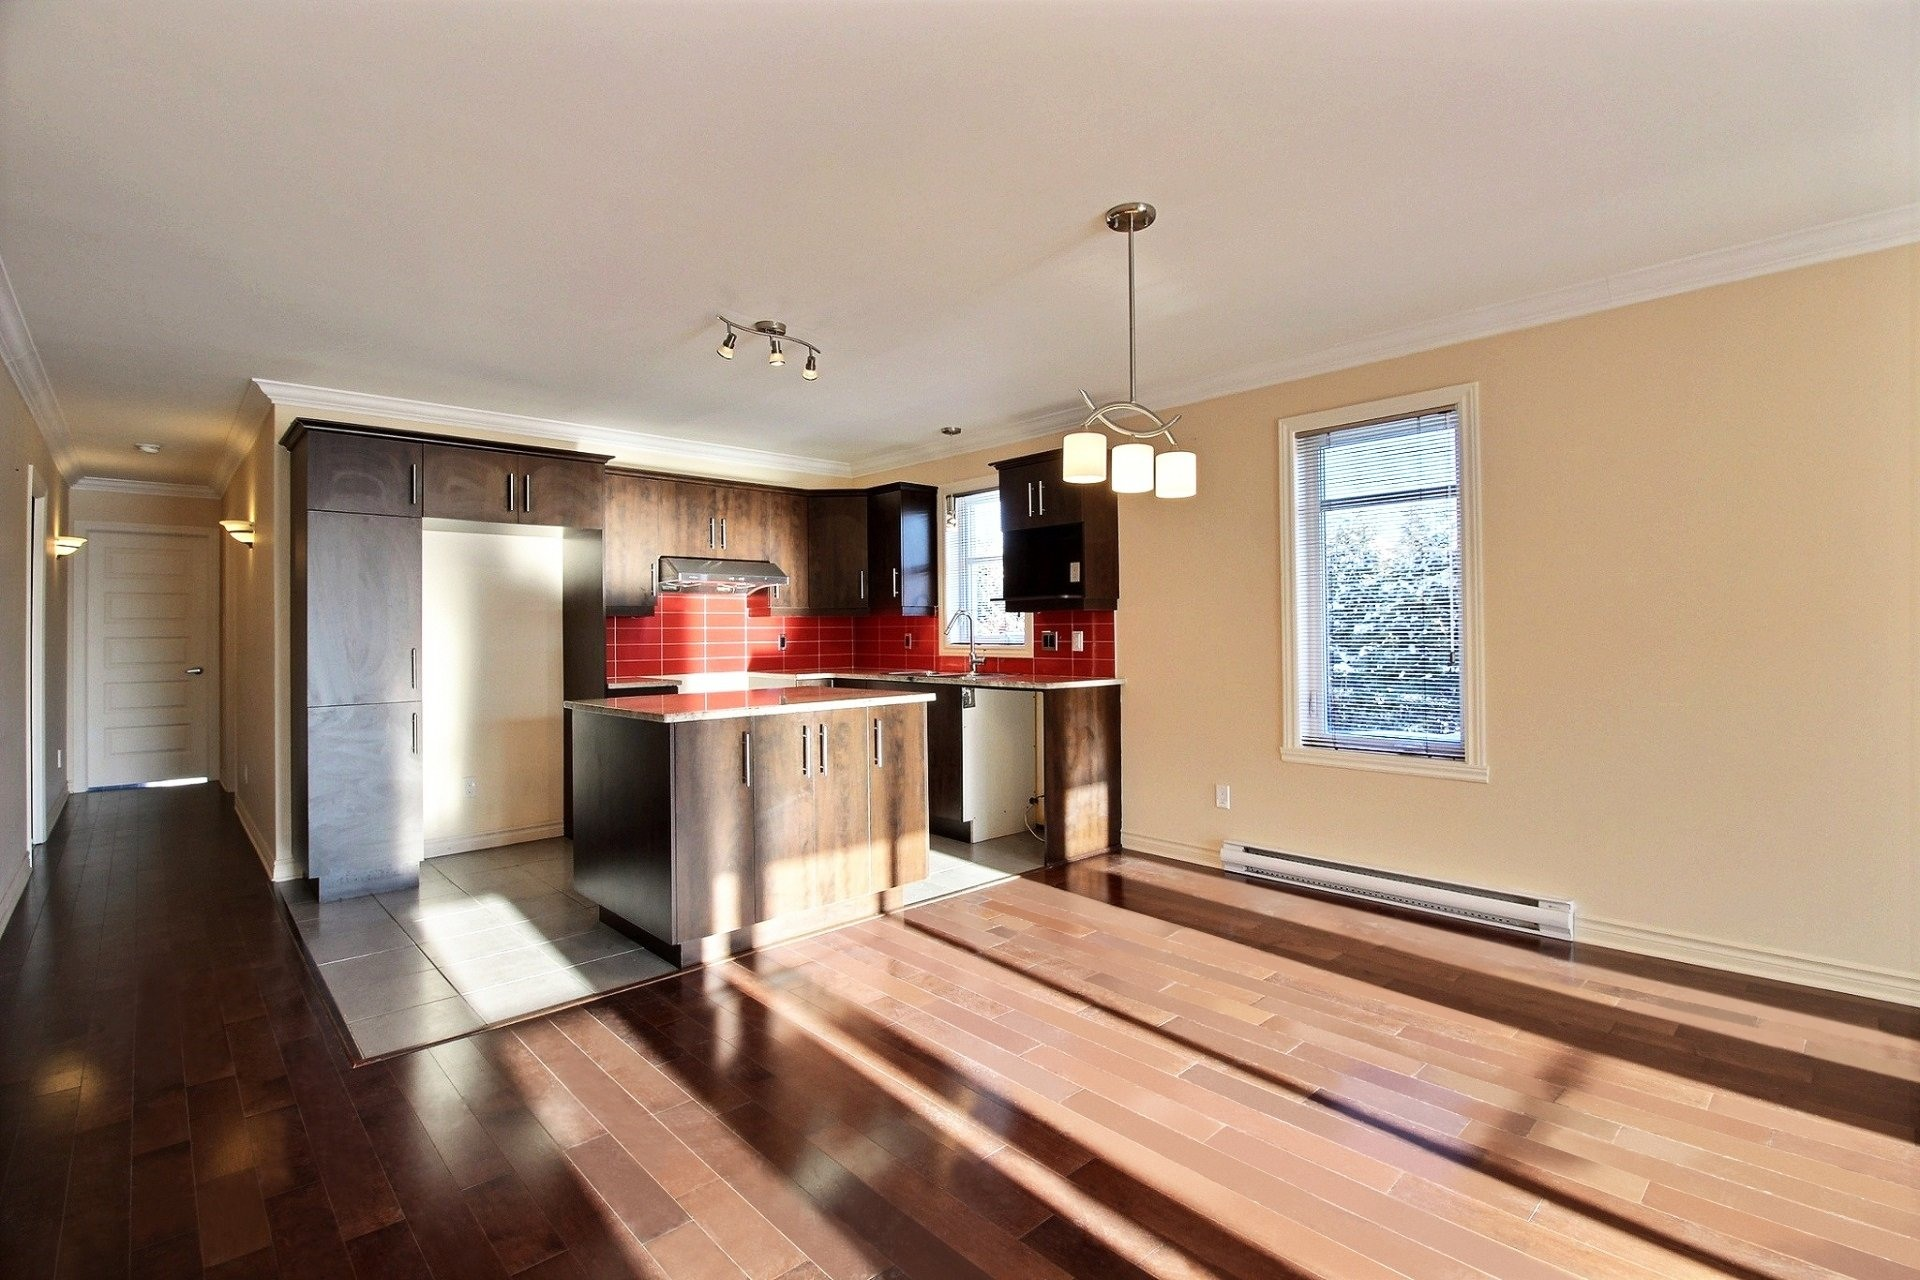 image 9 - Apartment For sale Laval Duvernay  - 7 rooms